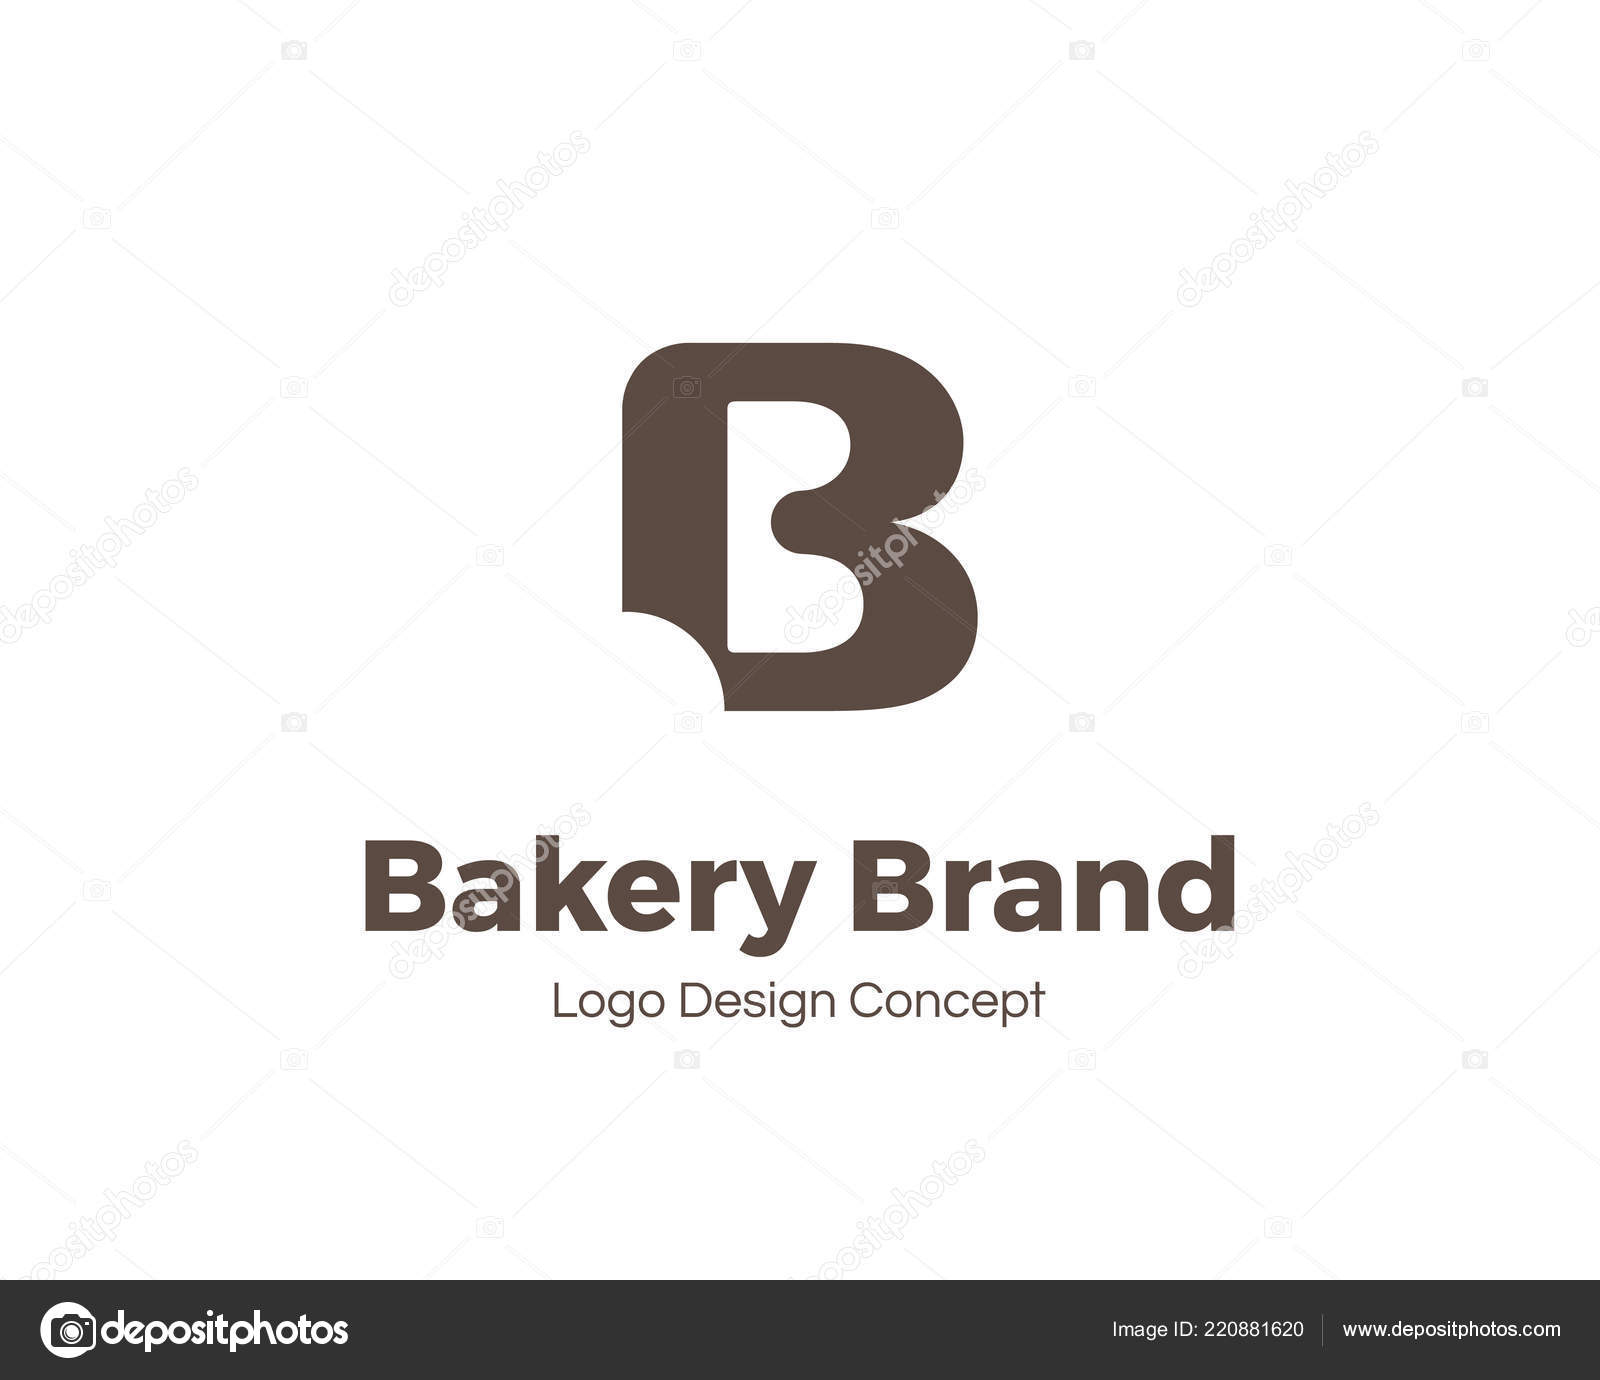 bakery logo template letter b bite mark universal icon bakery shop sign design template for labels badges banners posters menu identity and